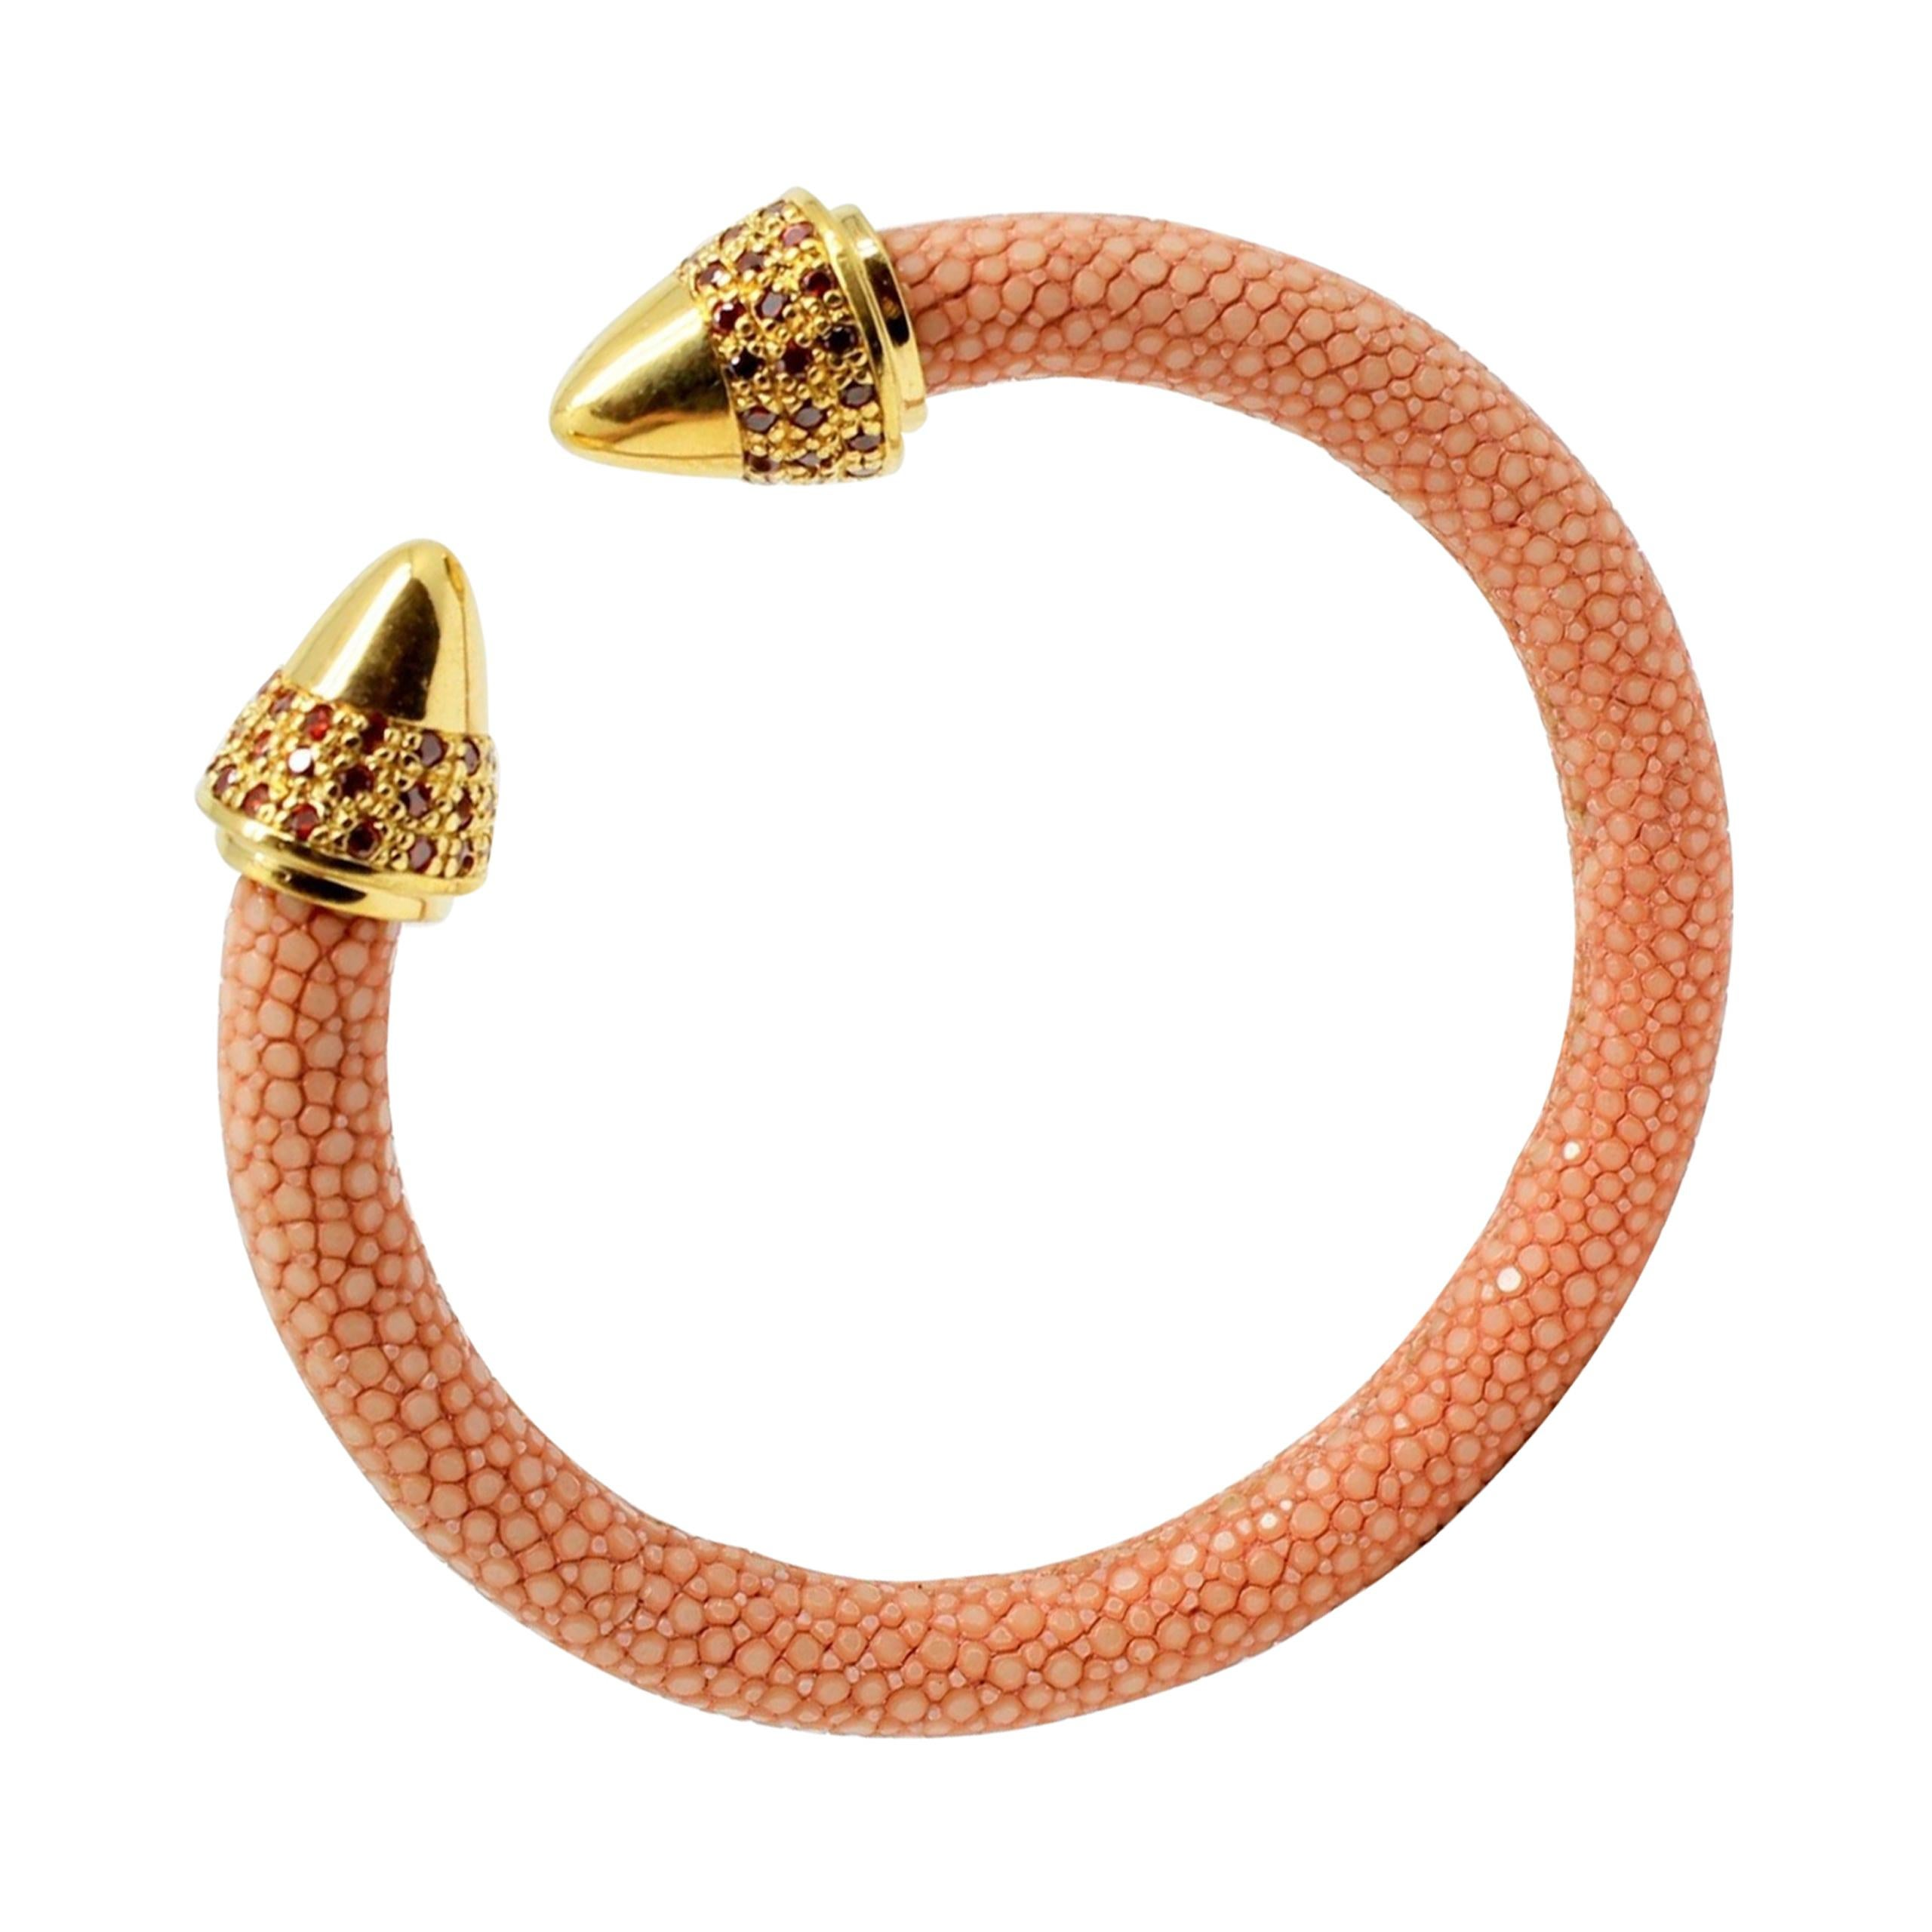 Coral Galuchat Skin Bangle Bracelet Teo, Gold-Plated